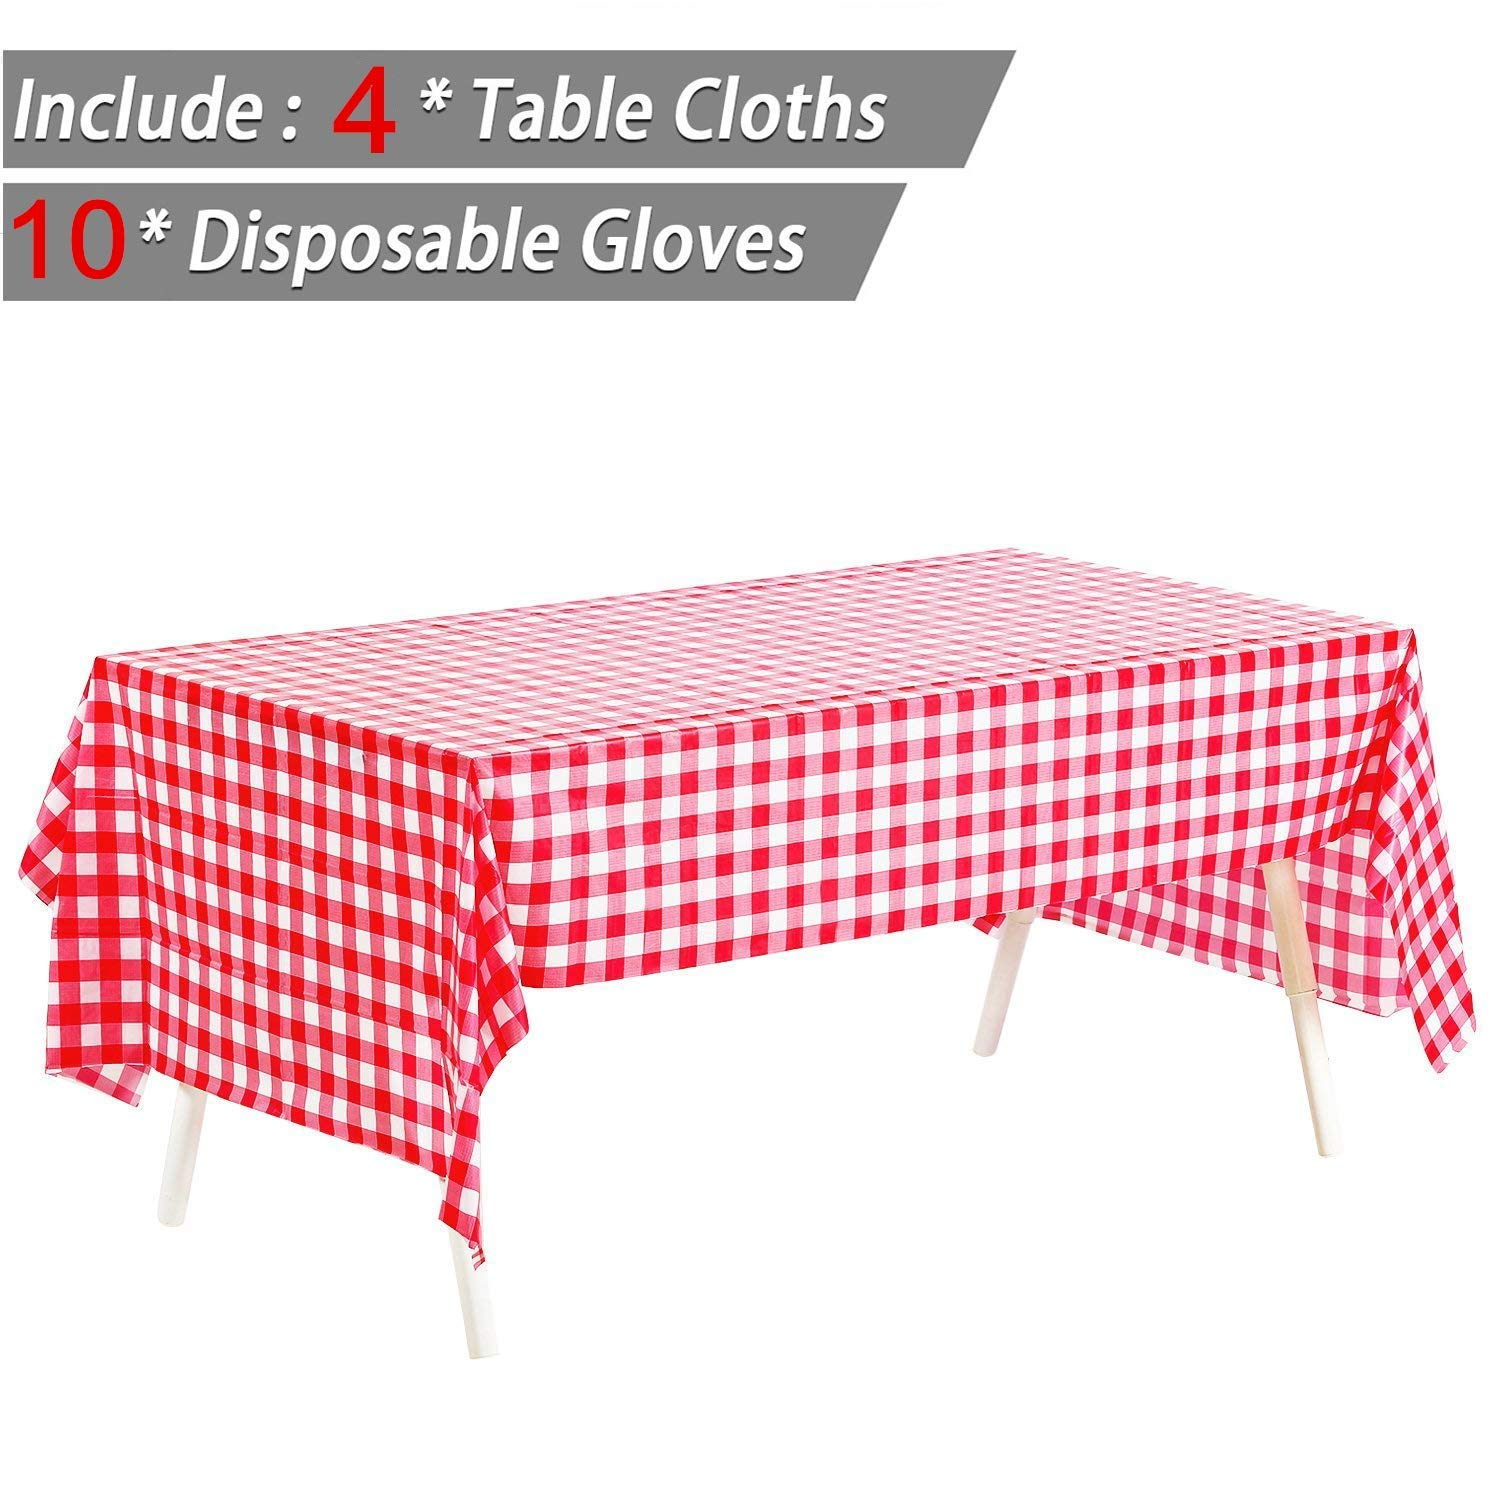 """Pack of 4, Picnic Table Covers - 54"""" x 108"""" Red & White Checkered Tablecloths Disposable Tablecovers Party Favor + 10 Pairs Plastic Disposable Gloves"""